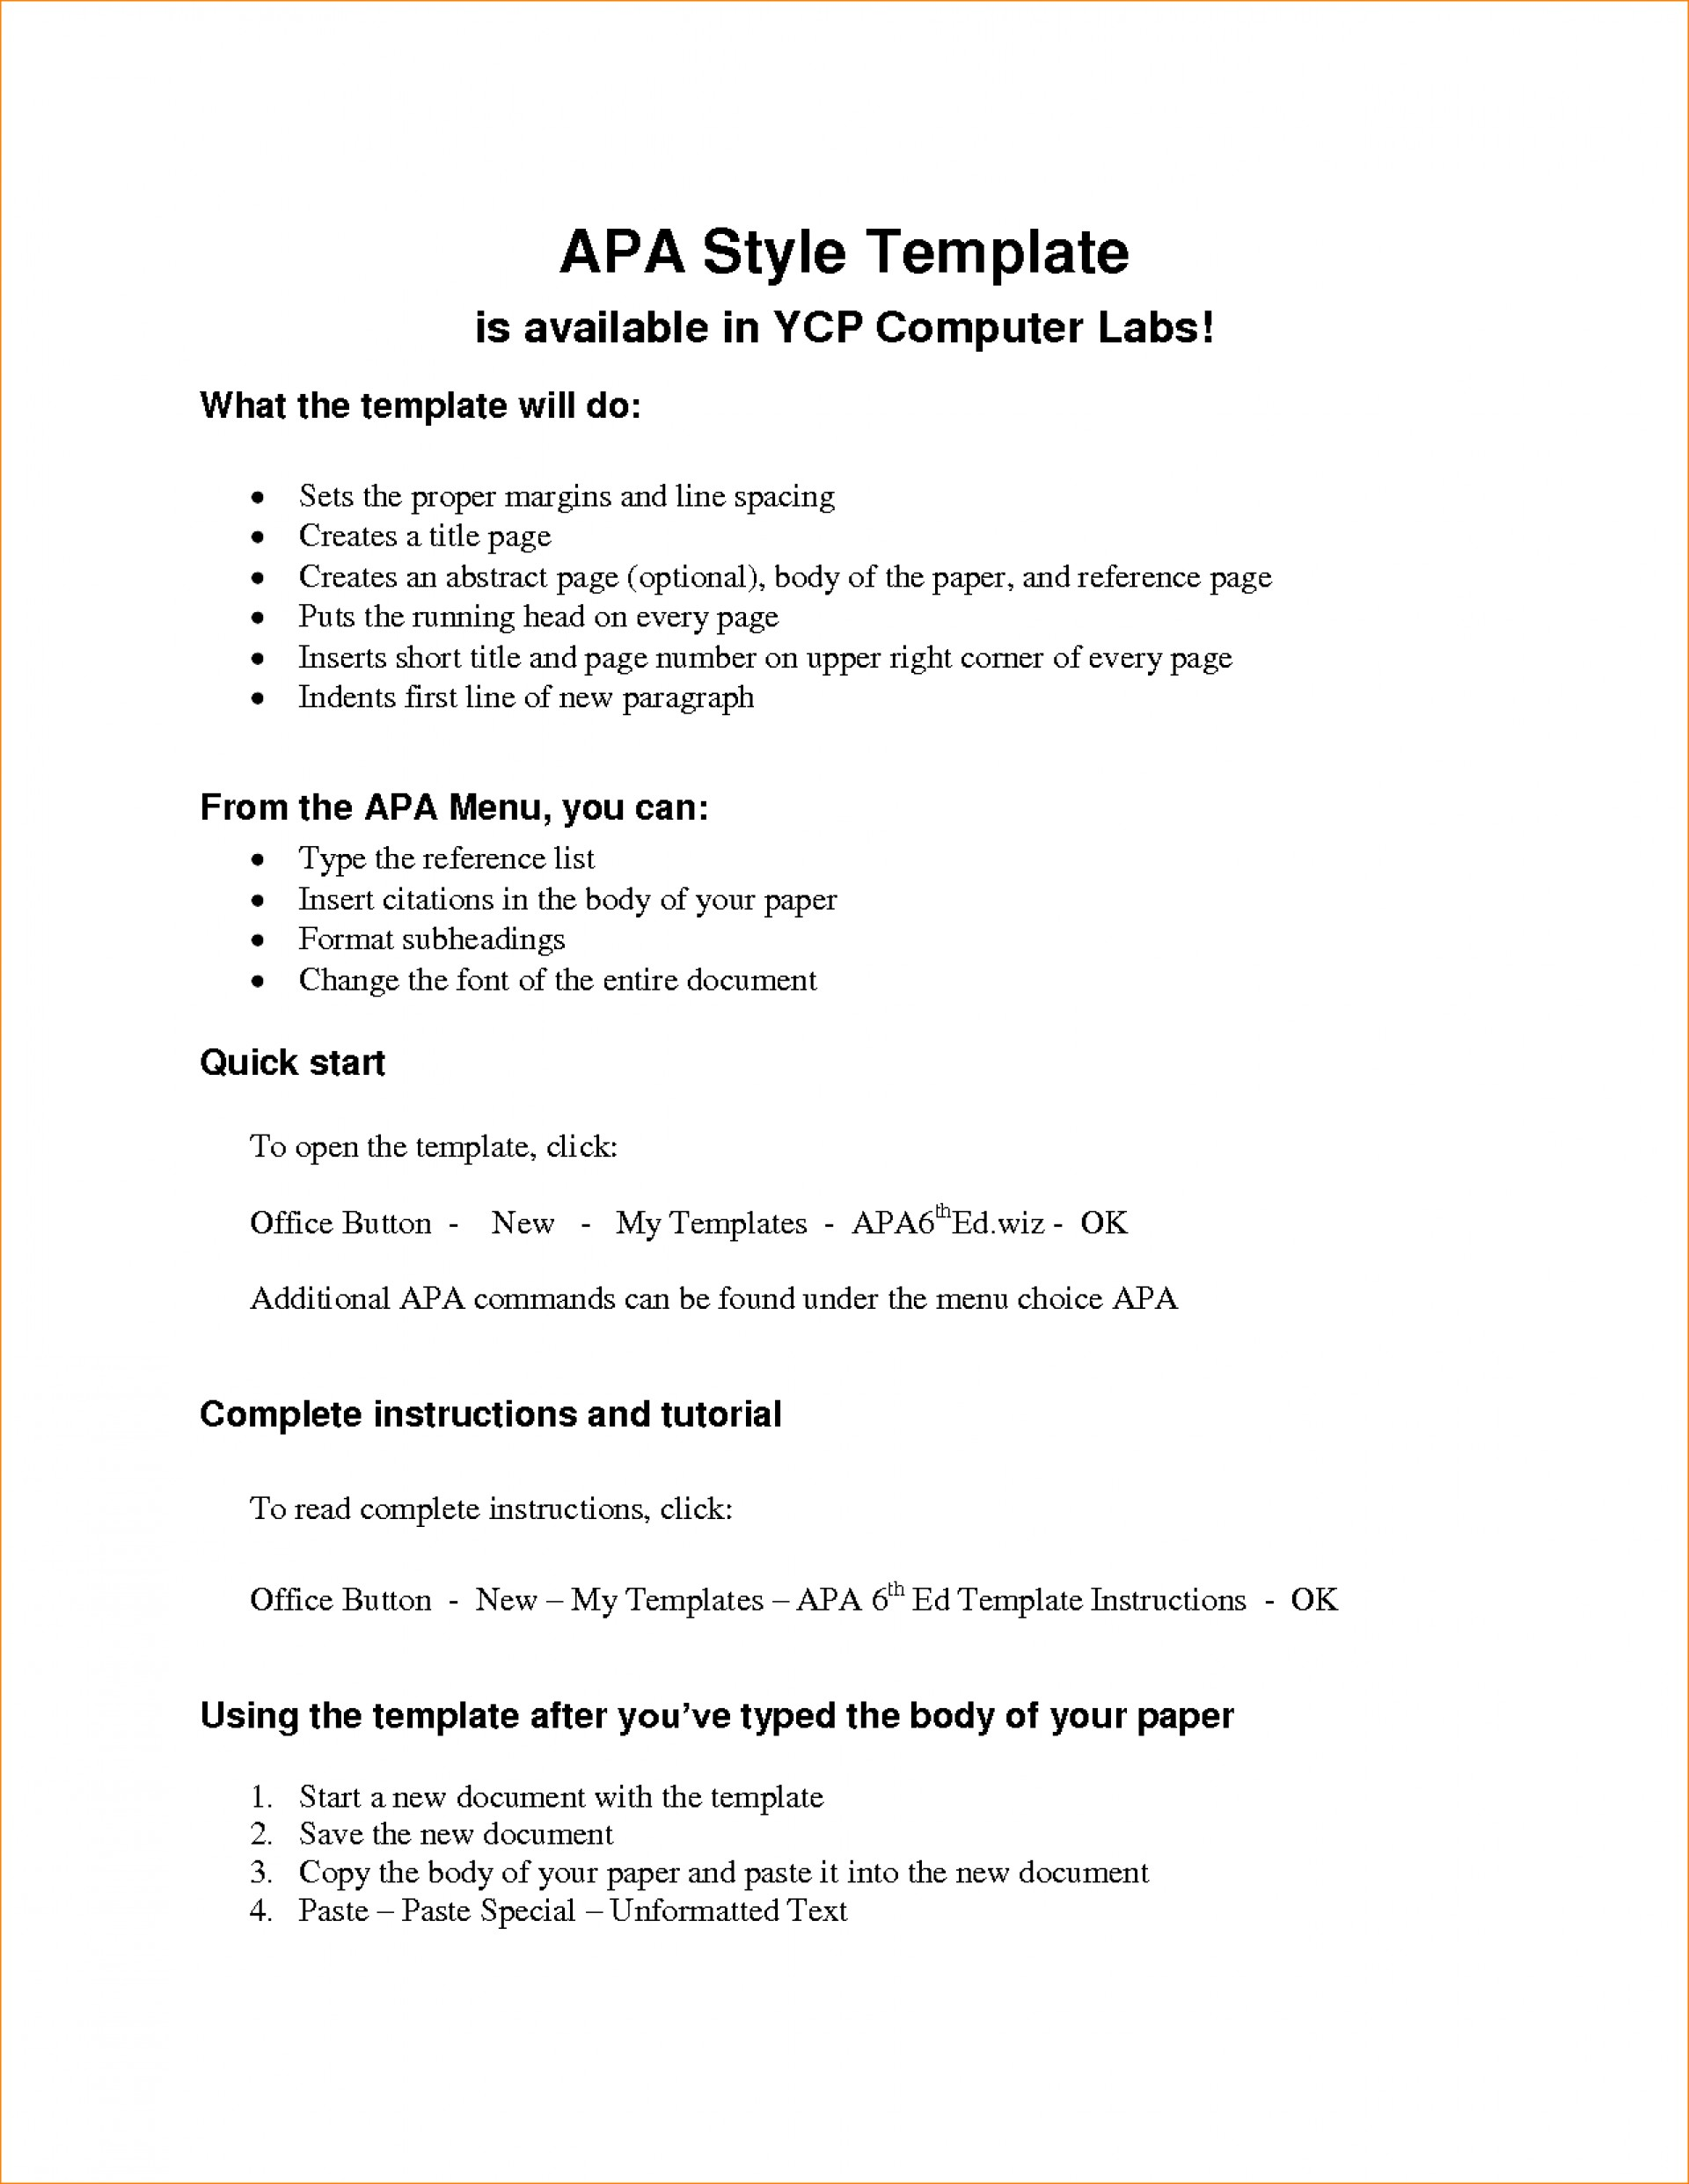 012 Research Paper Outline Template Apa How To Make Format Breathtaking Pdf 1920